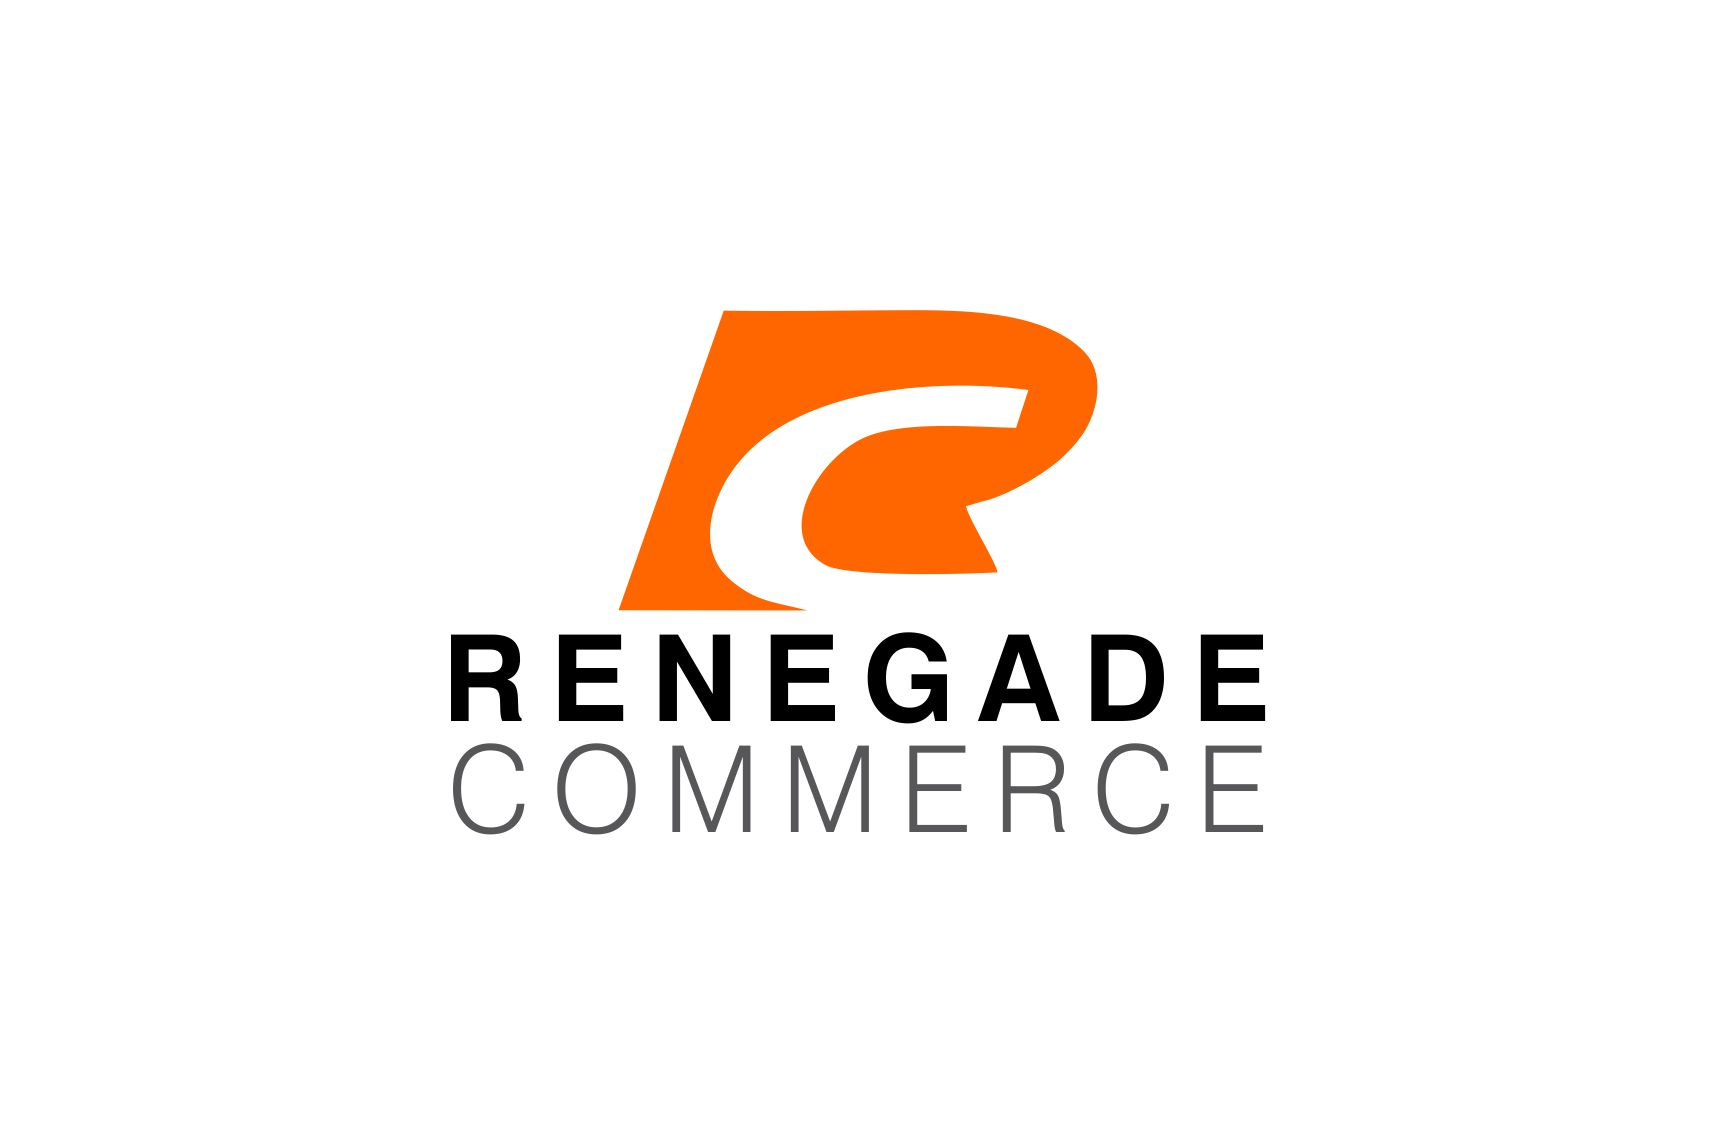 RenegadeCommerce